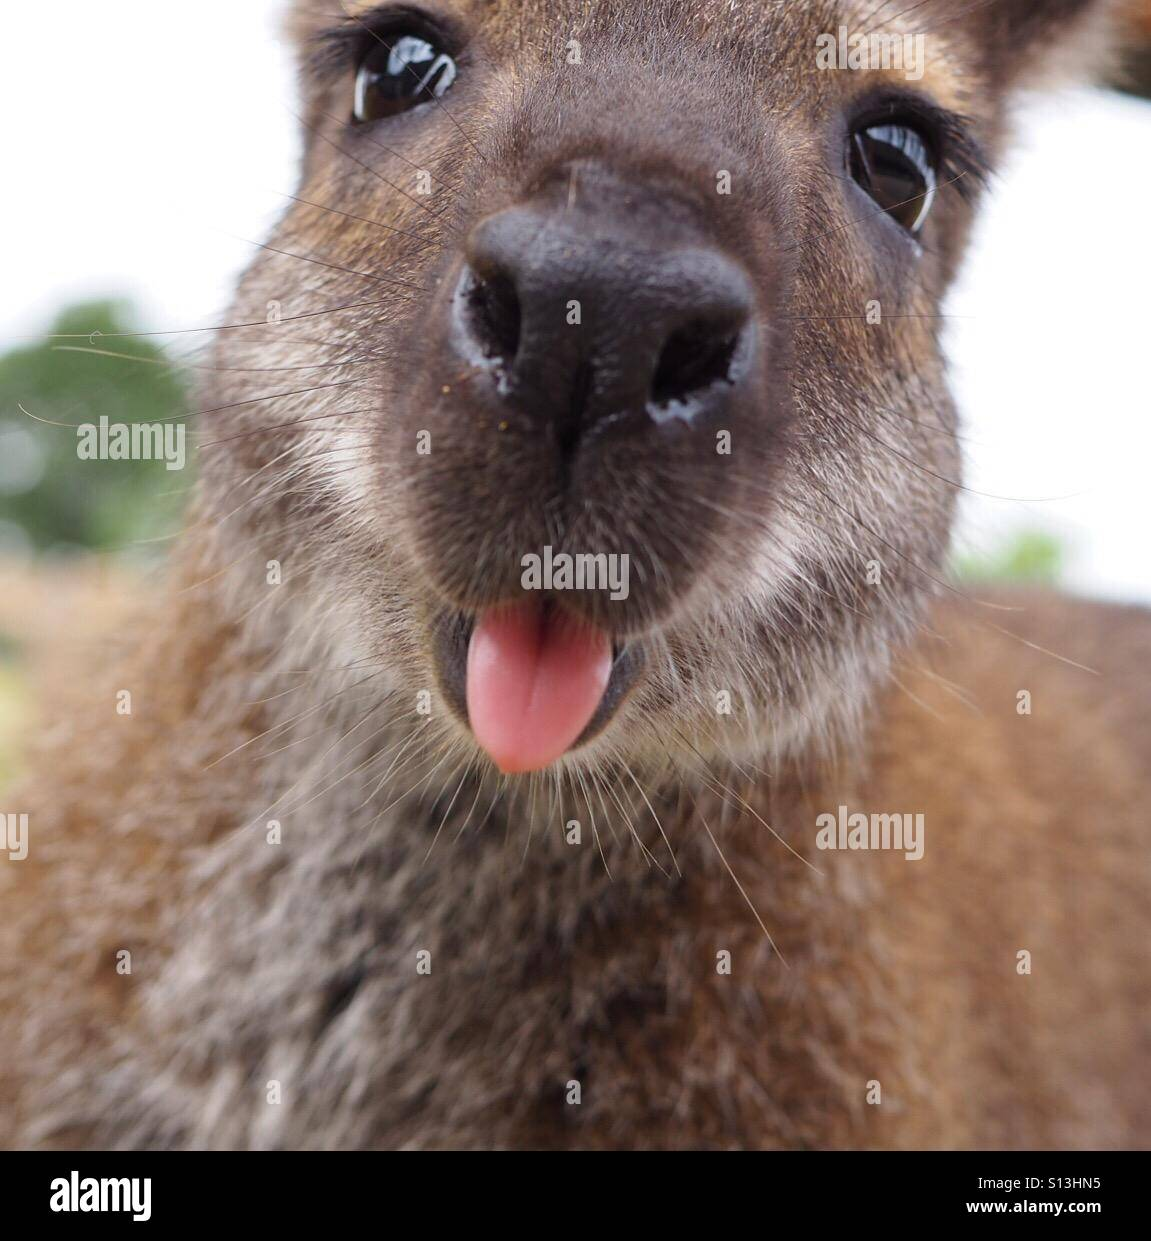 At the Wildlife park. - Stock Image